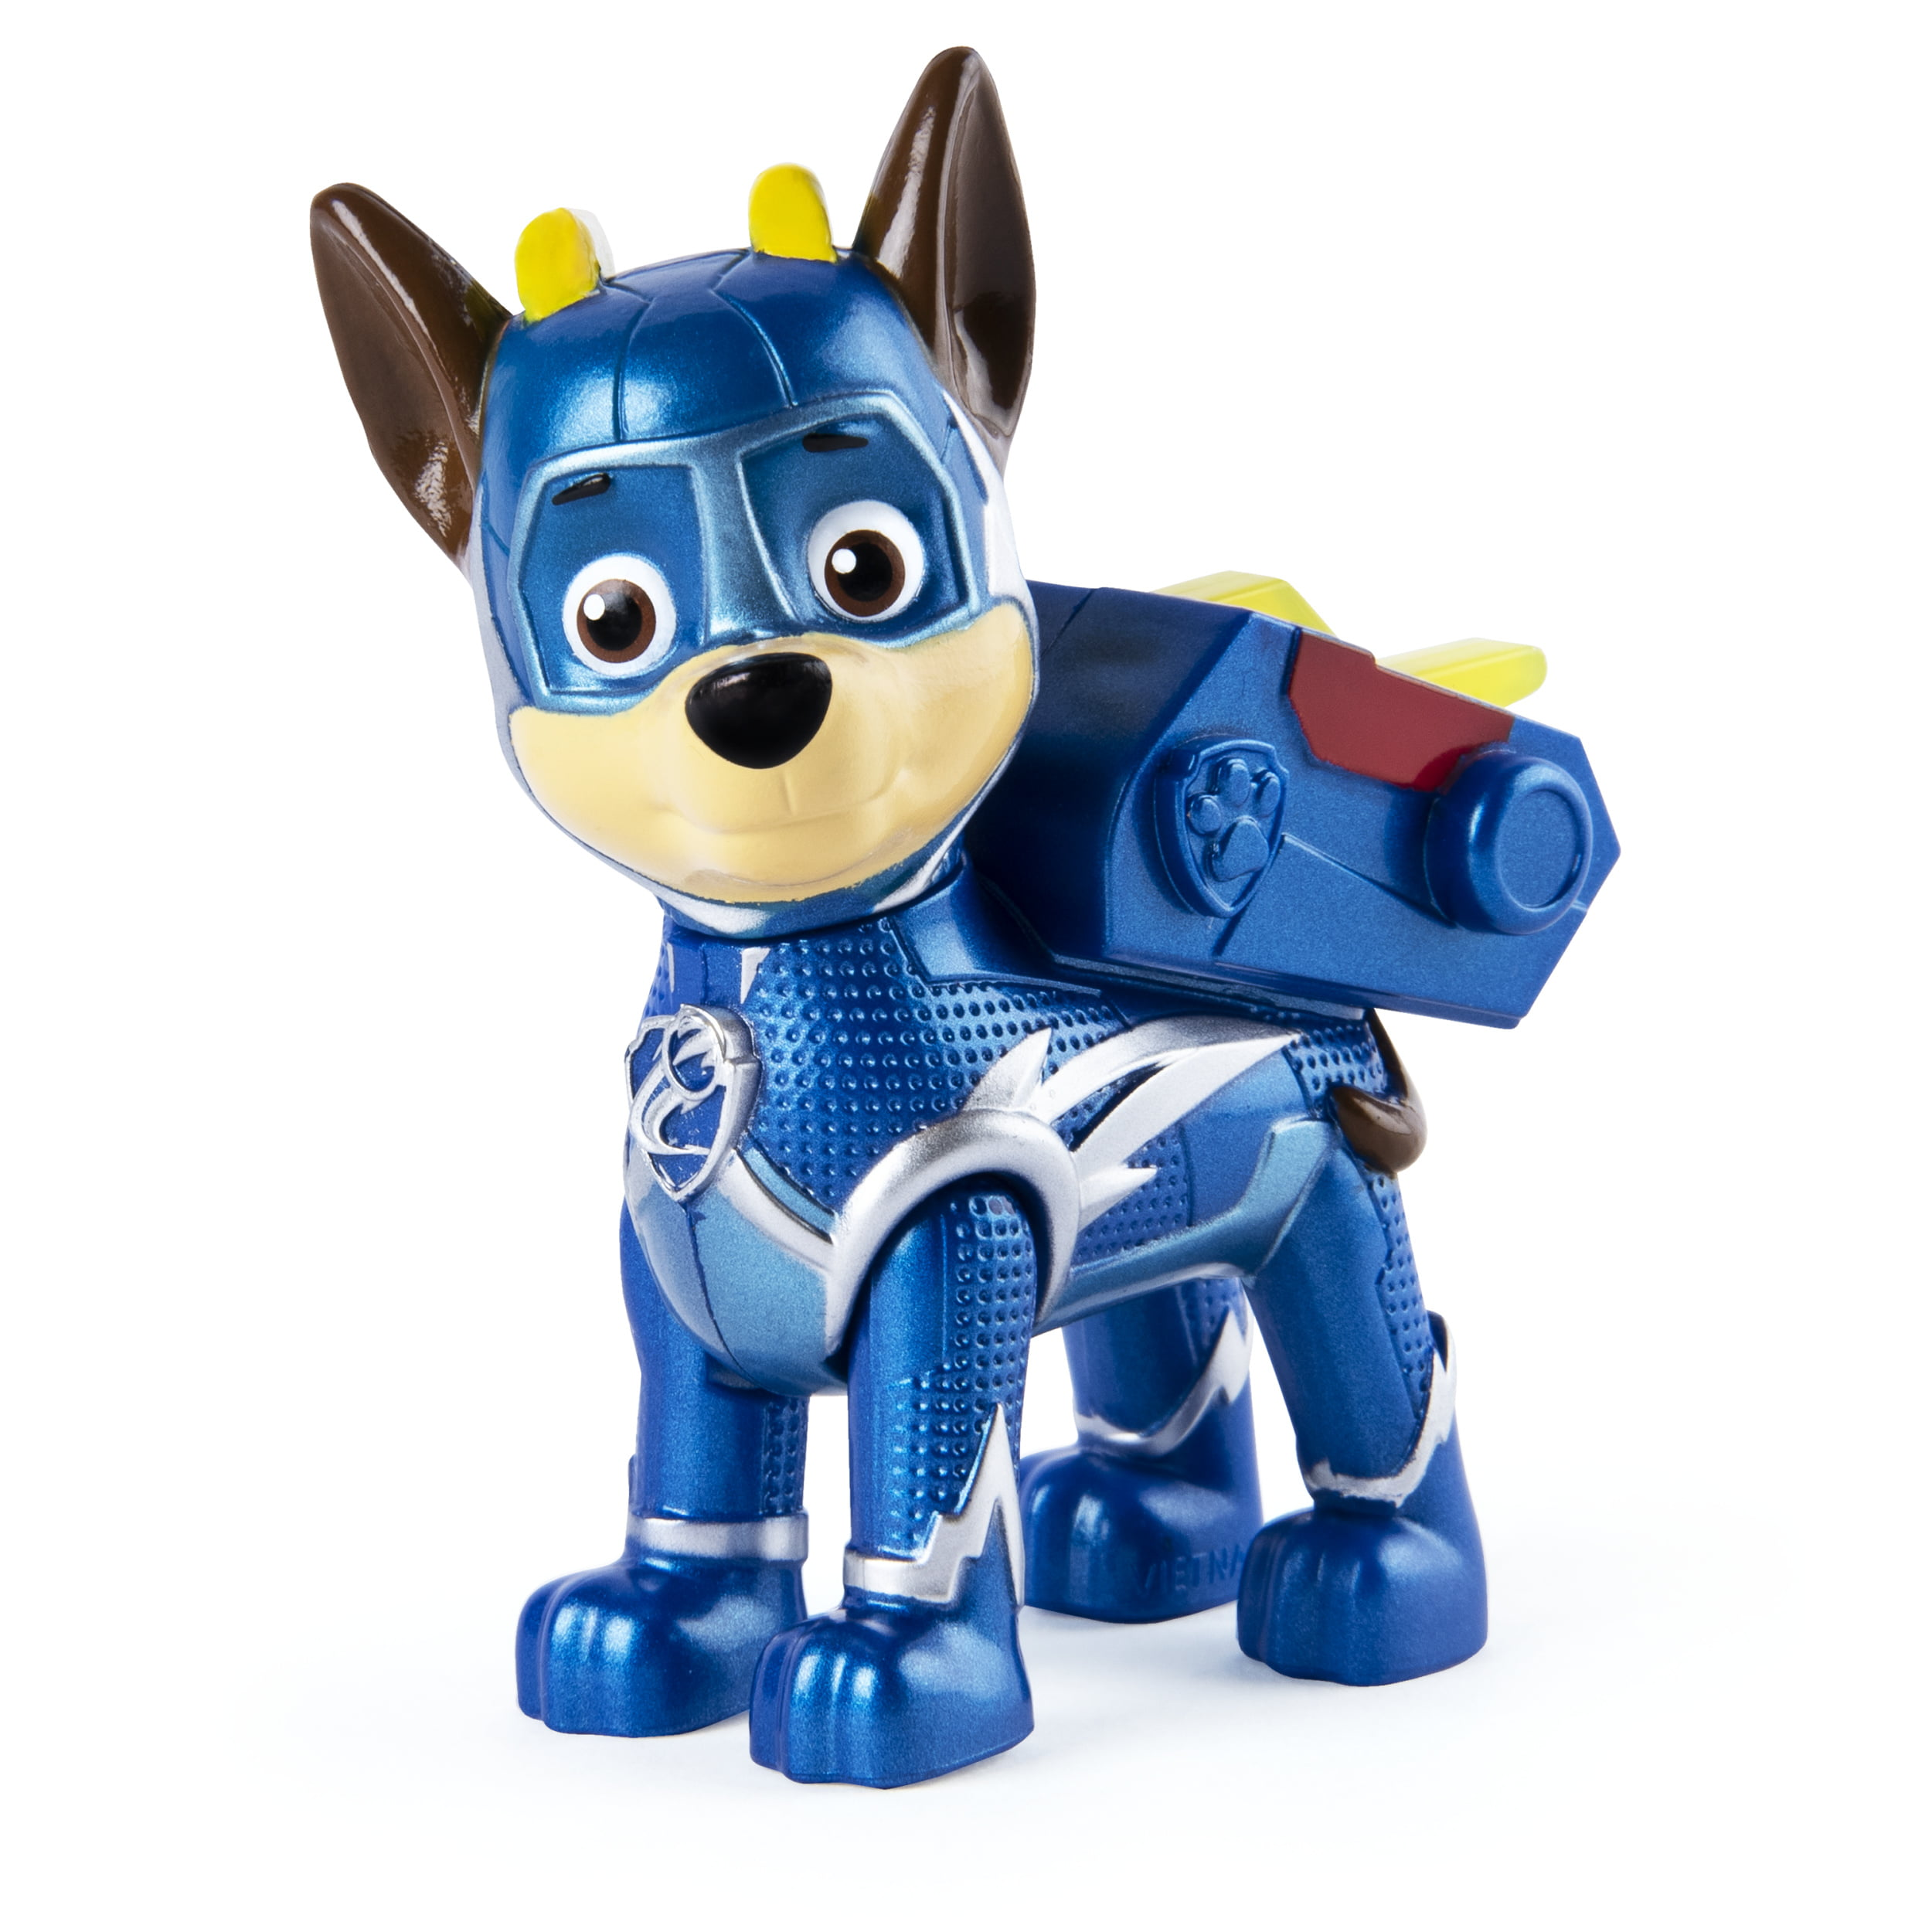 PAW Patrol, Mighty Pups Super PAWs Chase Figure with Transforming Backpack, for Kids Aged 3 and Up